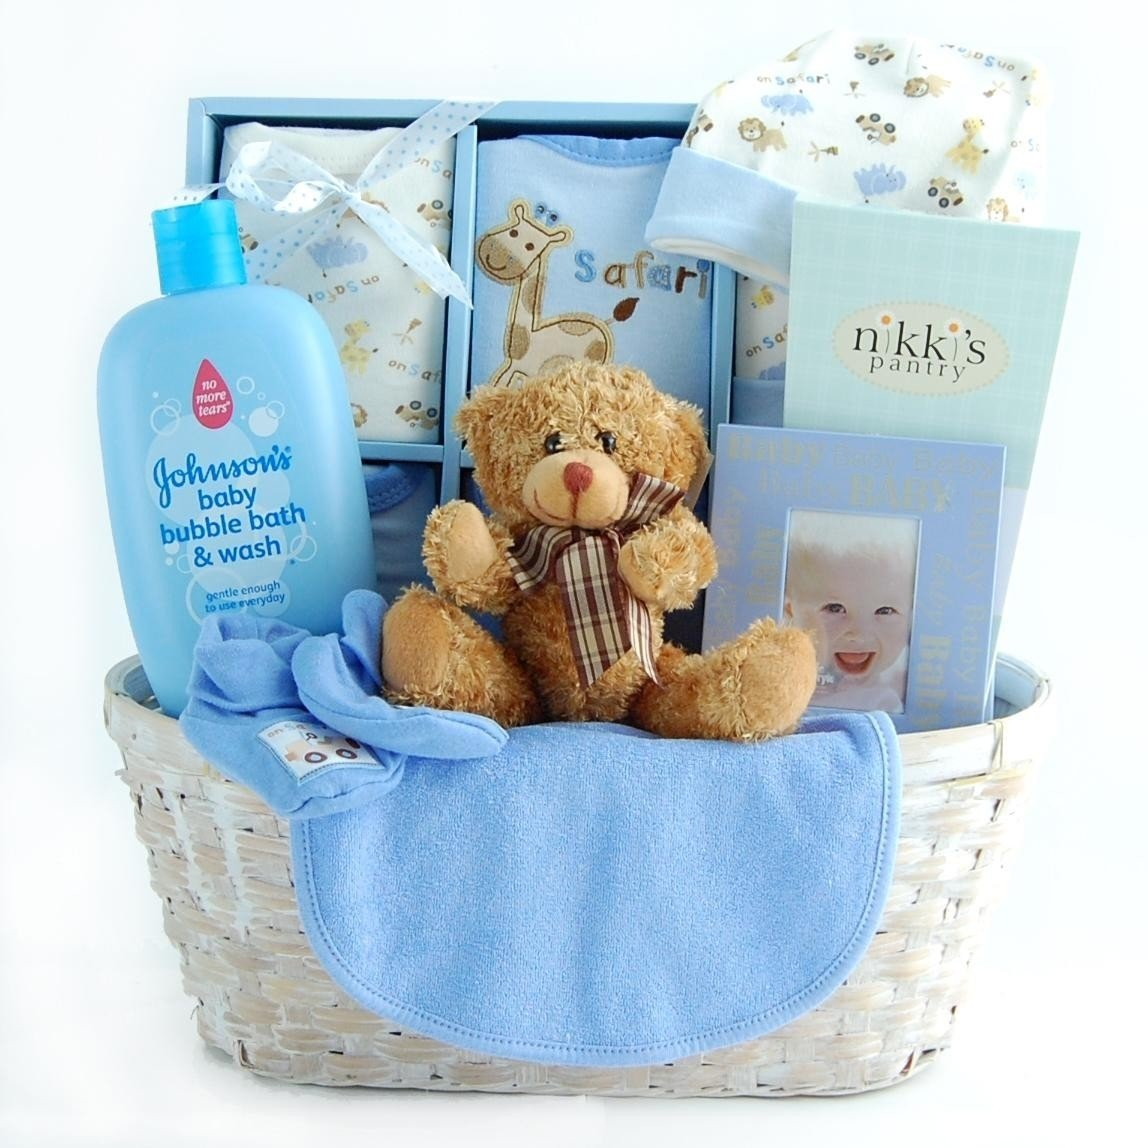 10 Most Recommended Newborn Baby Boy Gift Ideas baby shower decorations ideas cakes bridal games boy messages gifts 2020